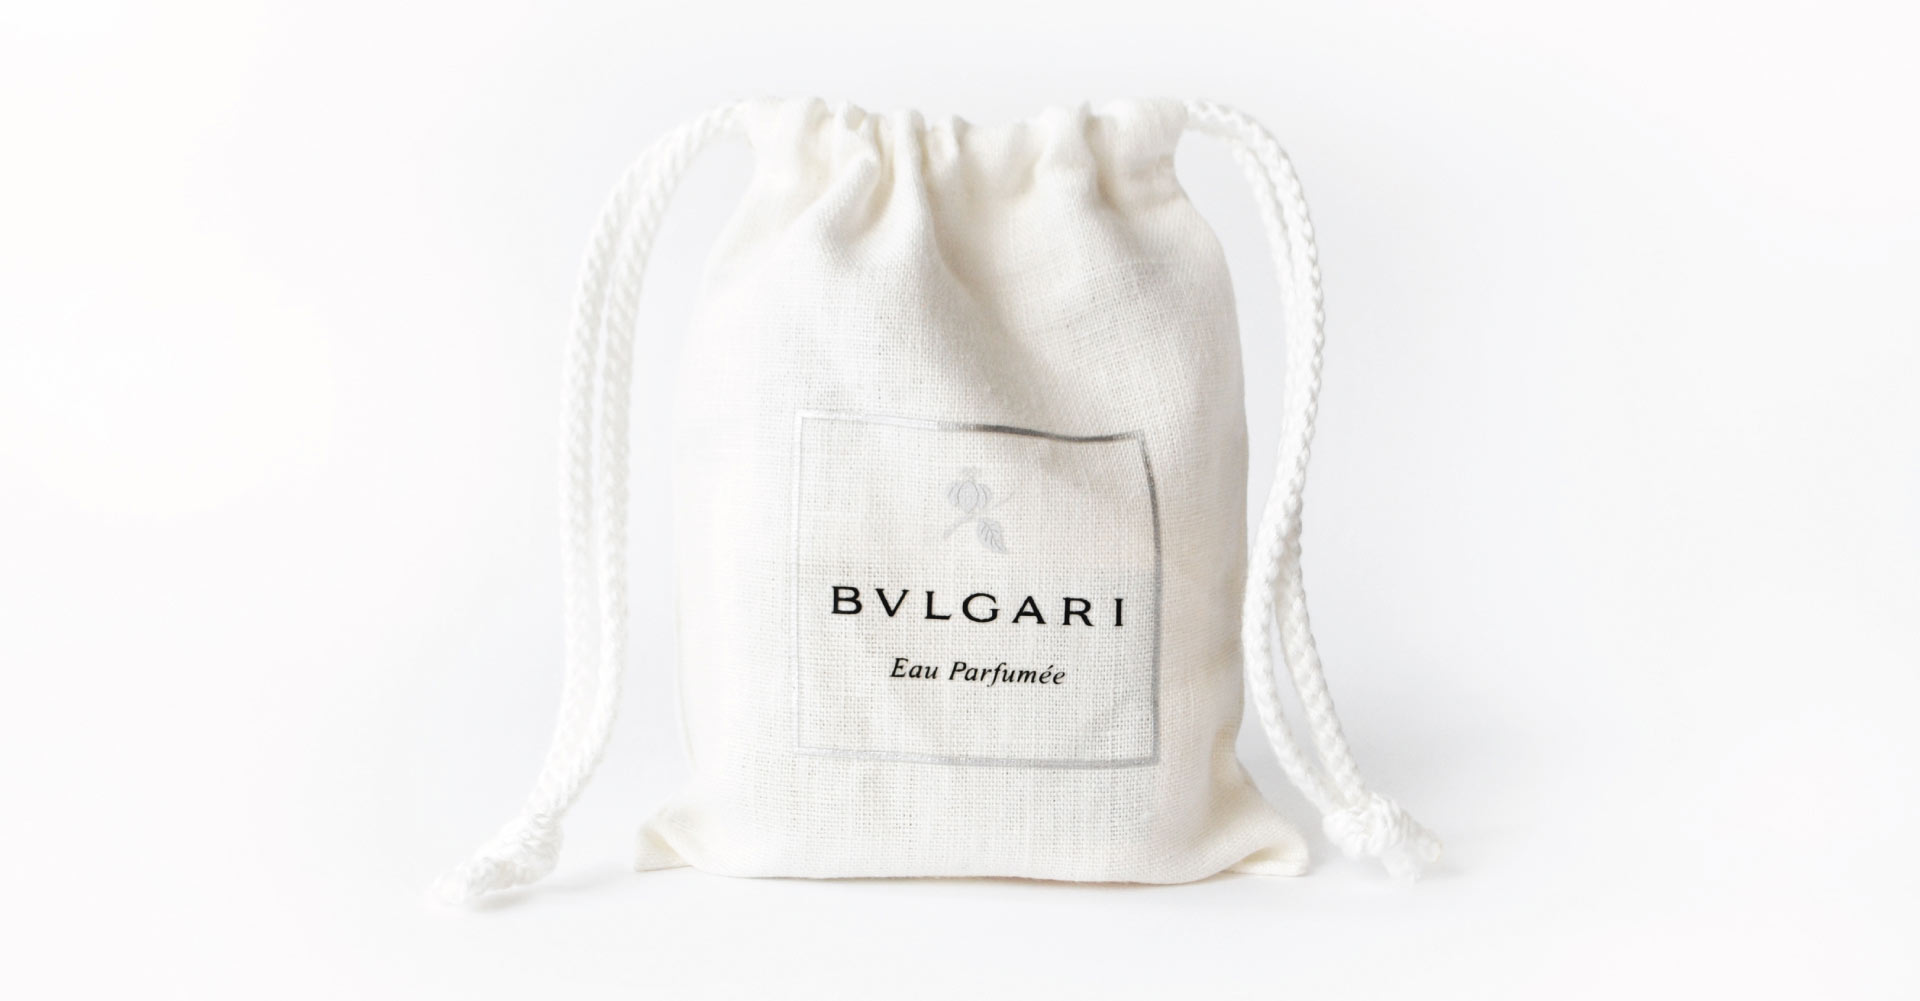 Creative_Retail_Packaging_Custom_Luxury_Packaging_Bvlgari_07.jpg